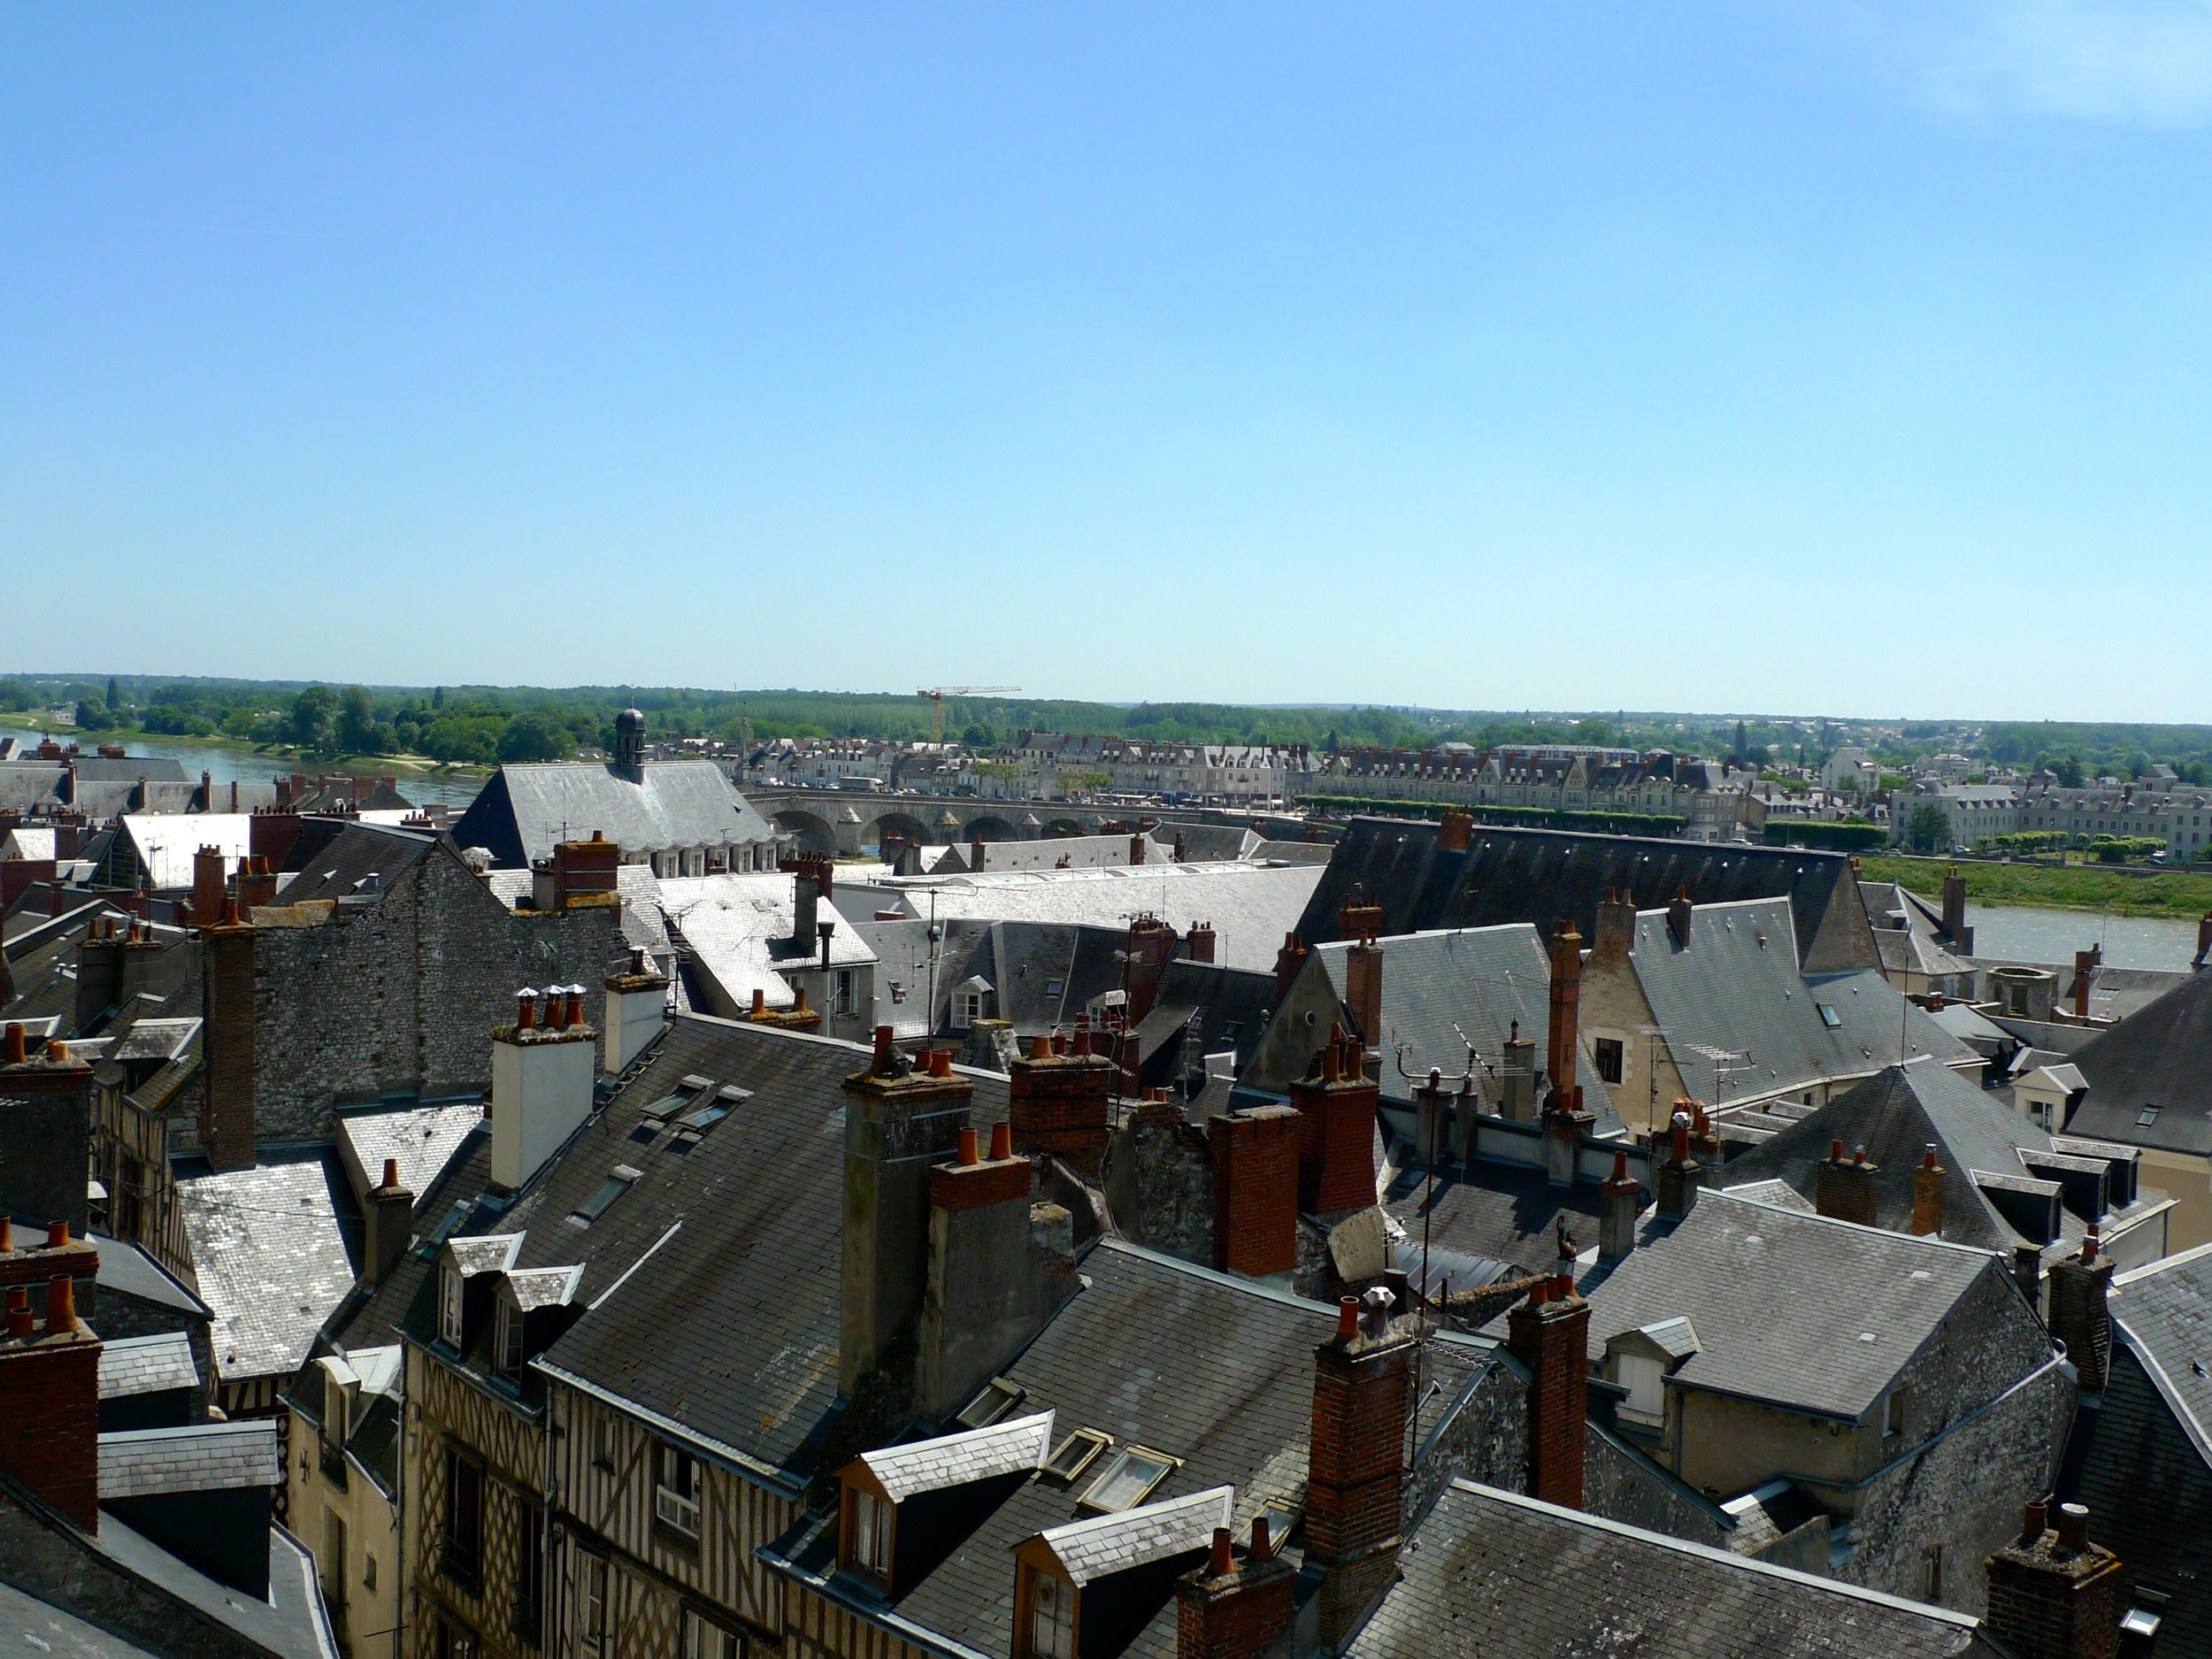 Rooftops in front of and beyond the bridge